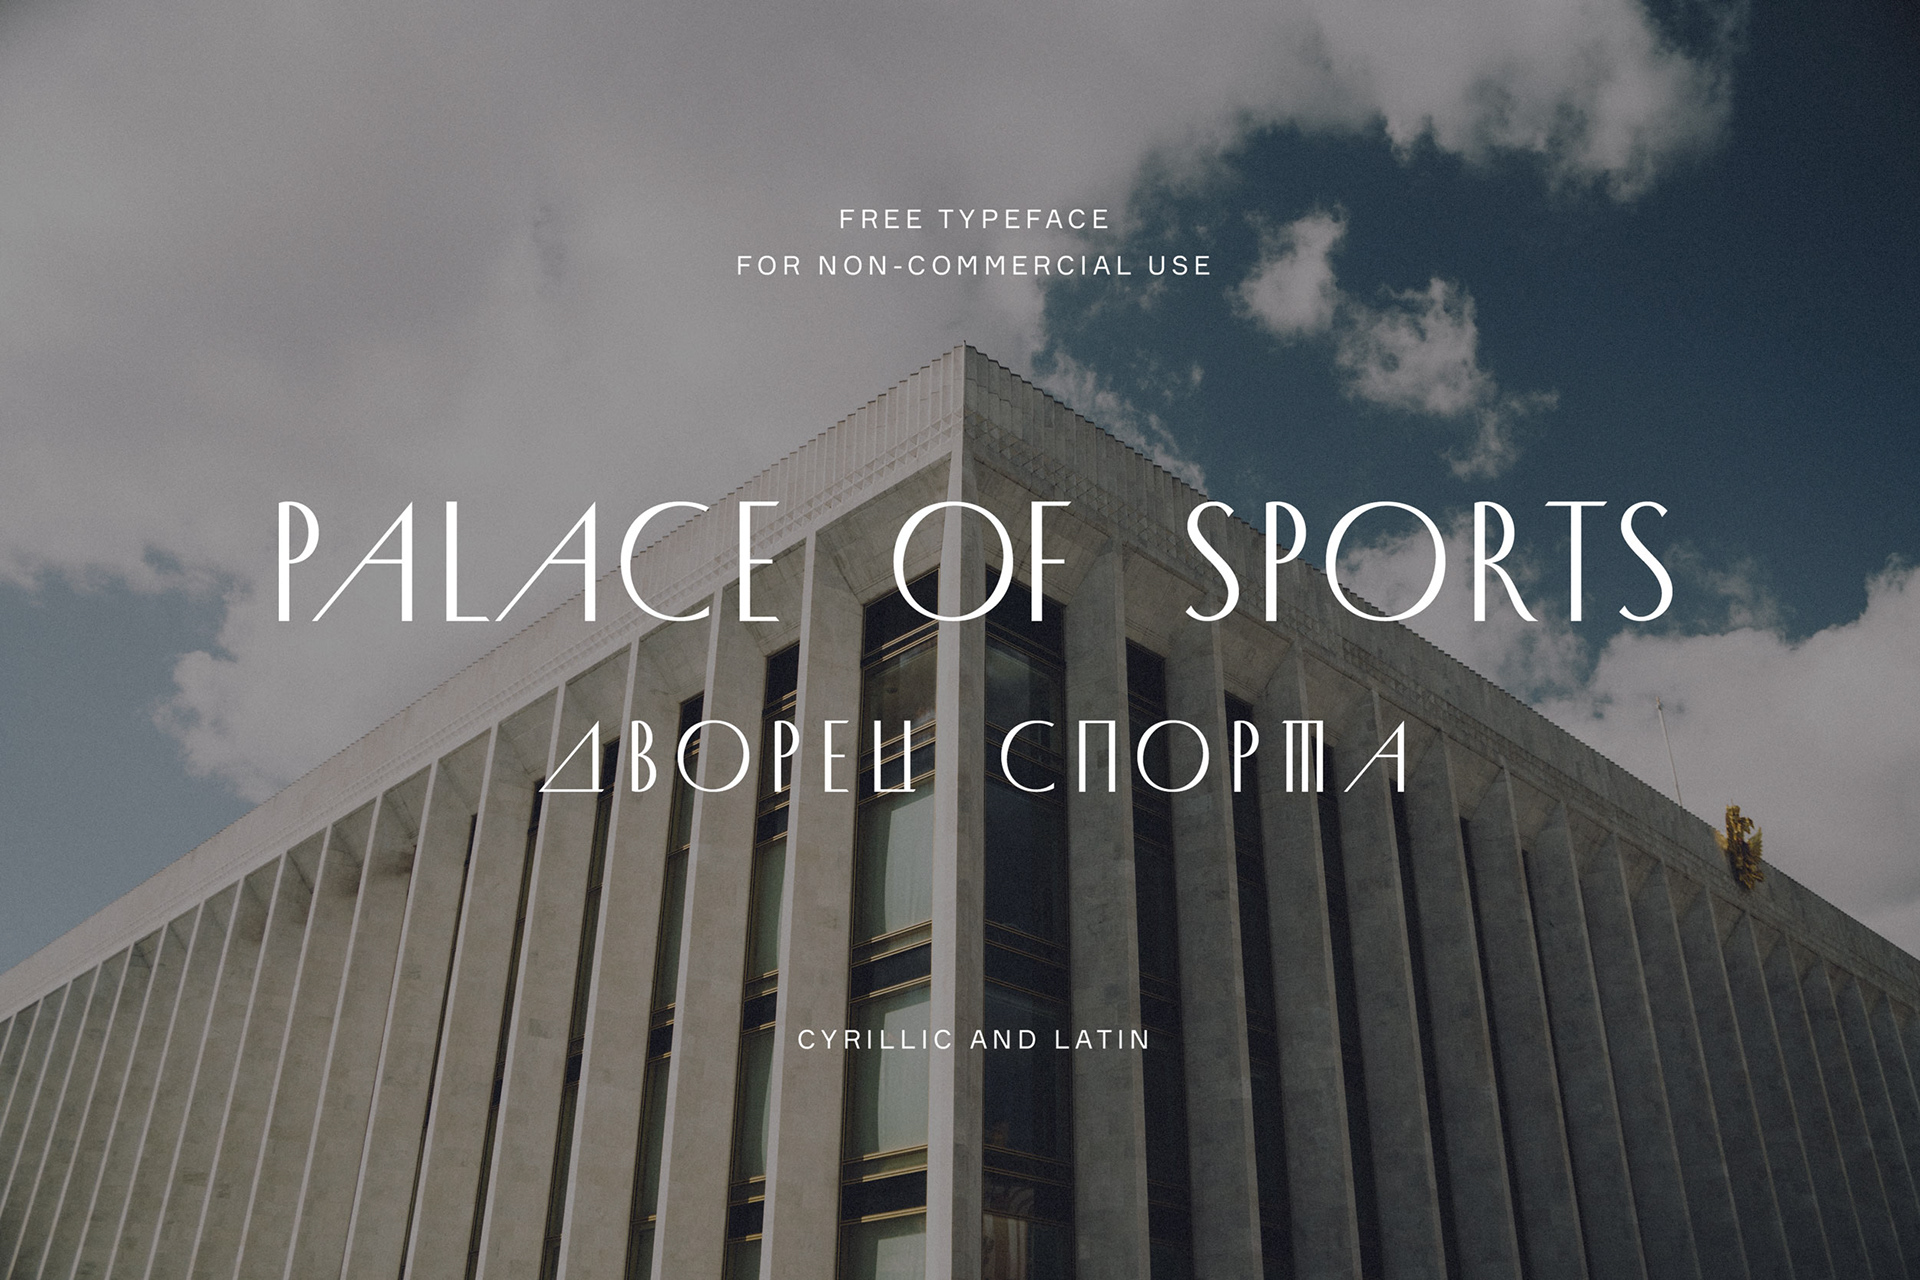 Palace of Sports Free Font - decorative-display, cyrillic